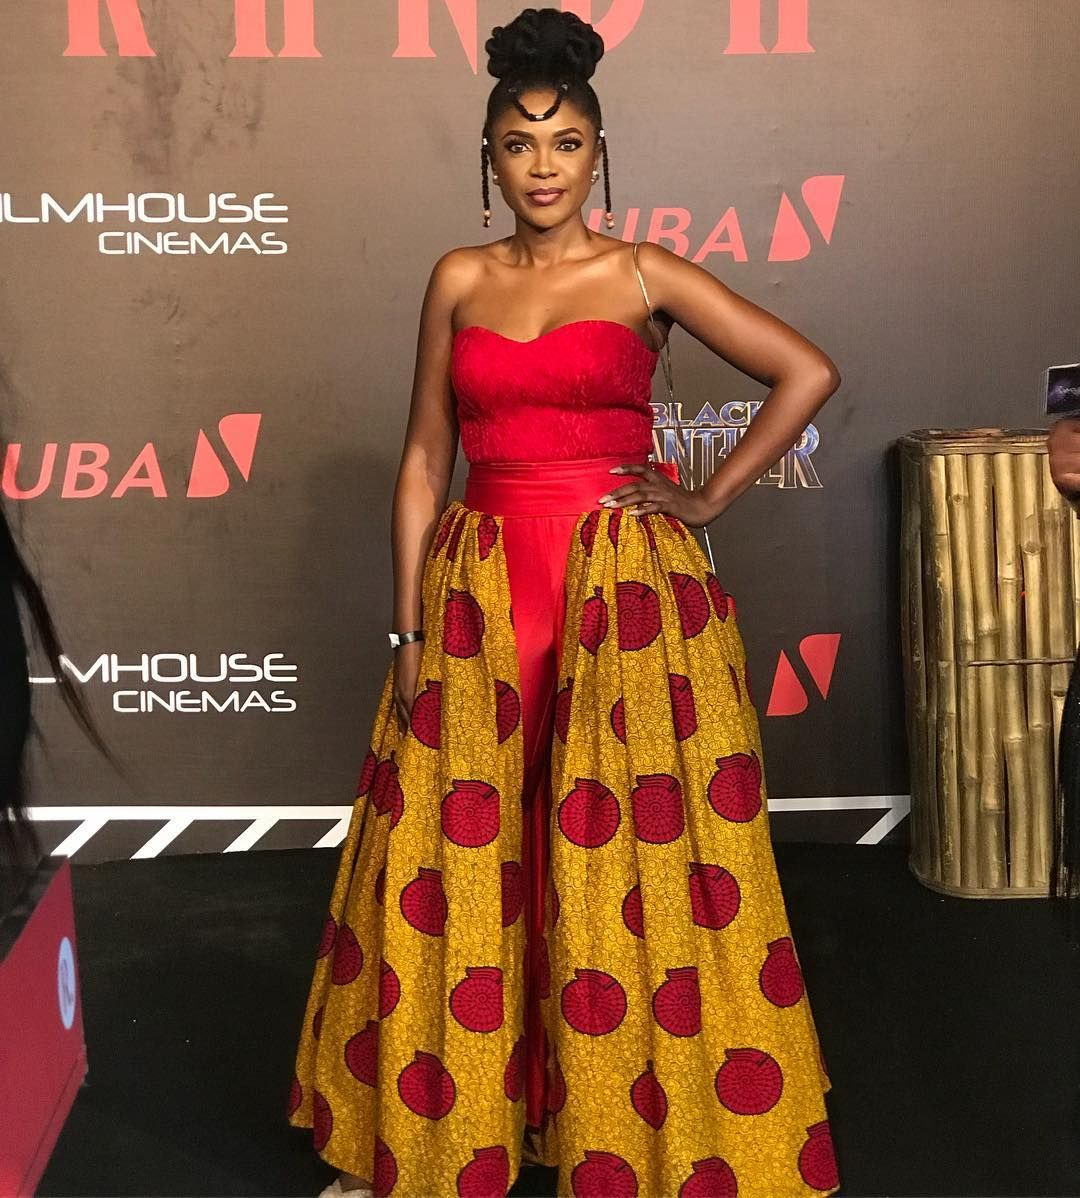 Black Panther Movement Welcome To Wakanda Nigeria Check Out What Nollywood Stars Wore To The Premiere African Glitz Magazine African Inspired Fashion African Fashion Women African Fashion